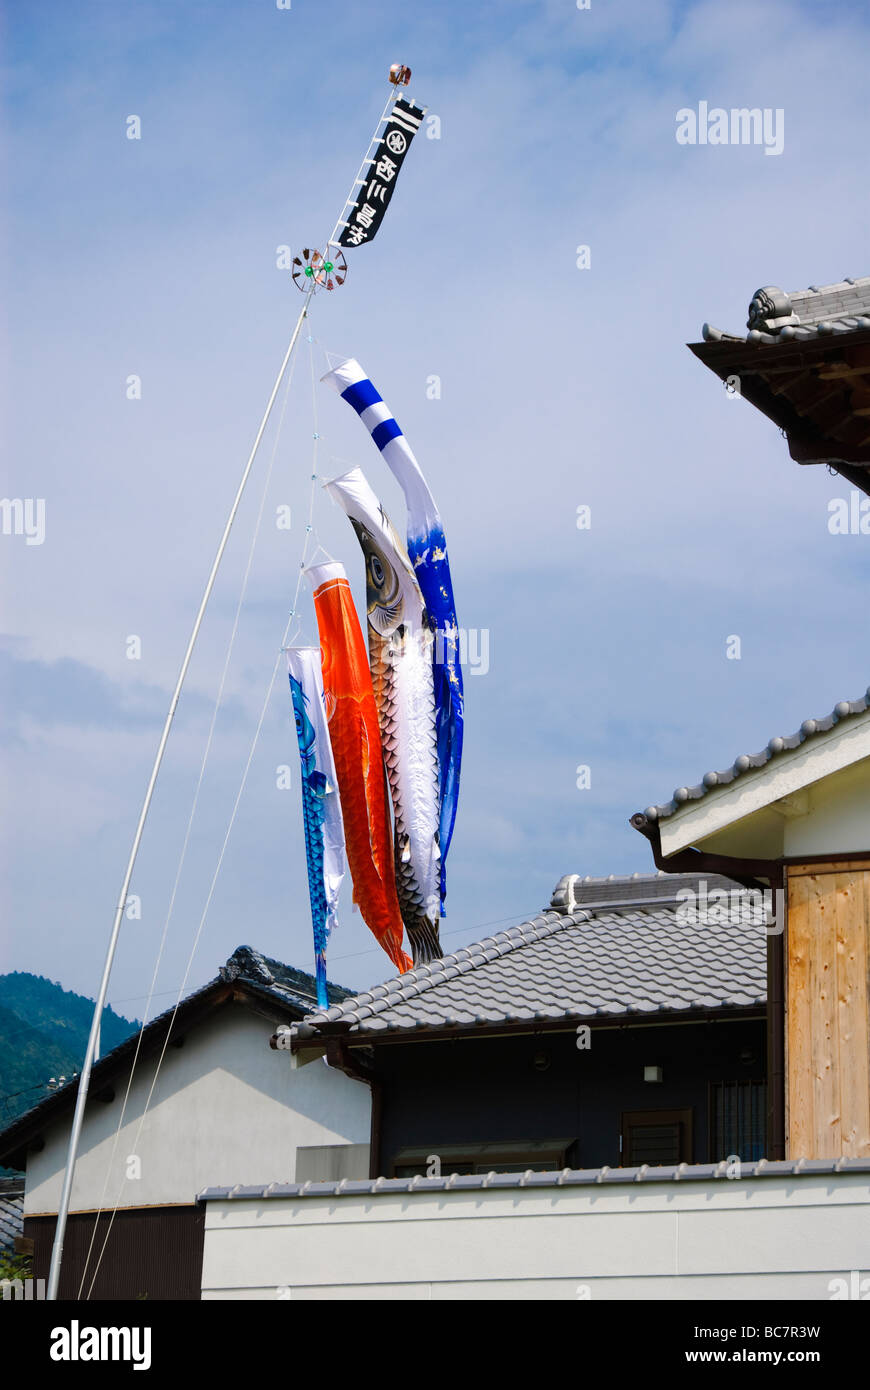 Children's day (formerly known as Boy's Day) carp banners fluttering in the wind. - Stock Image